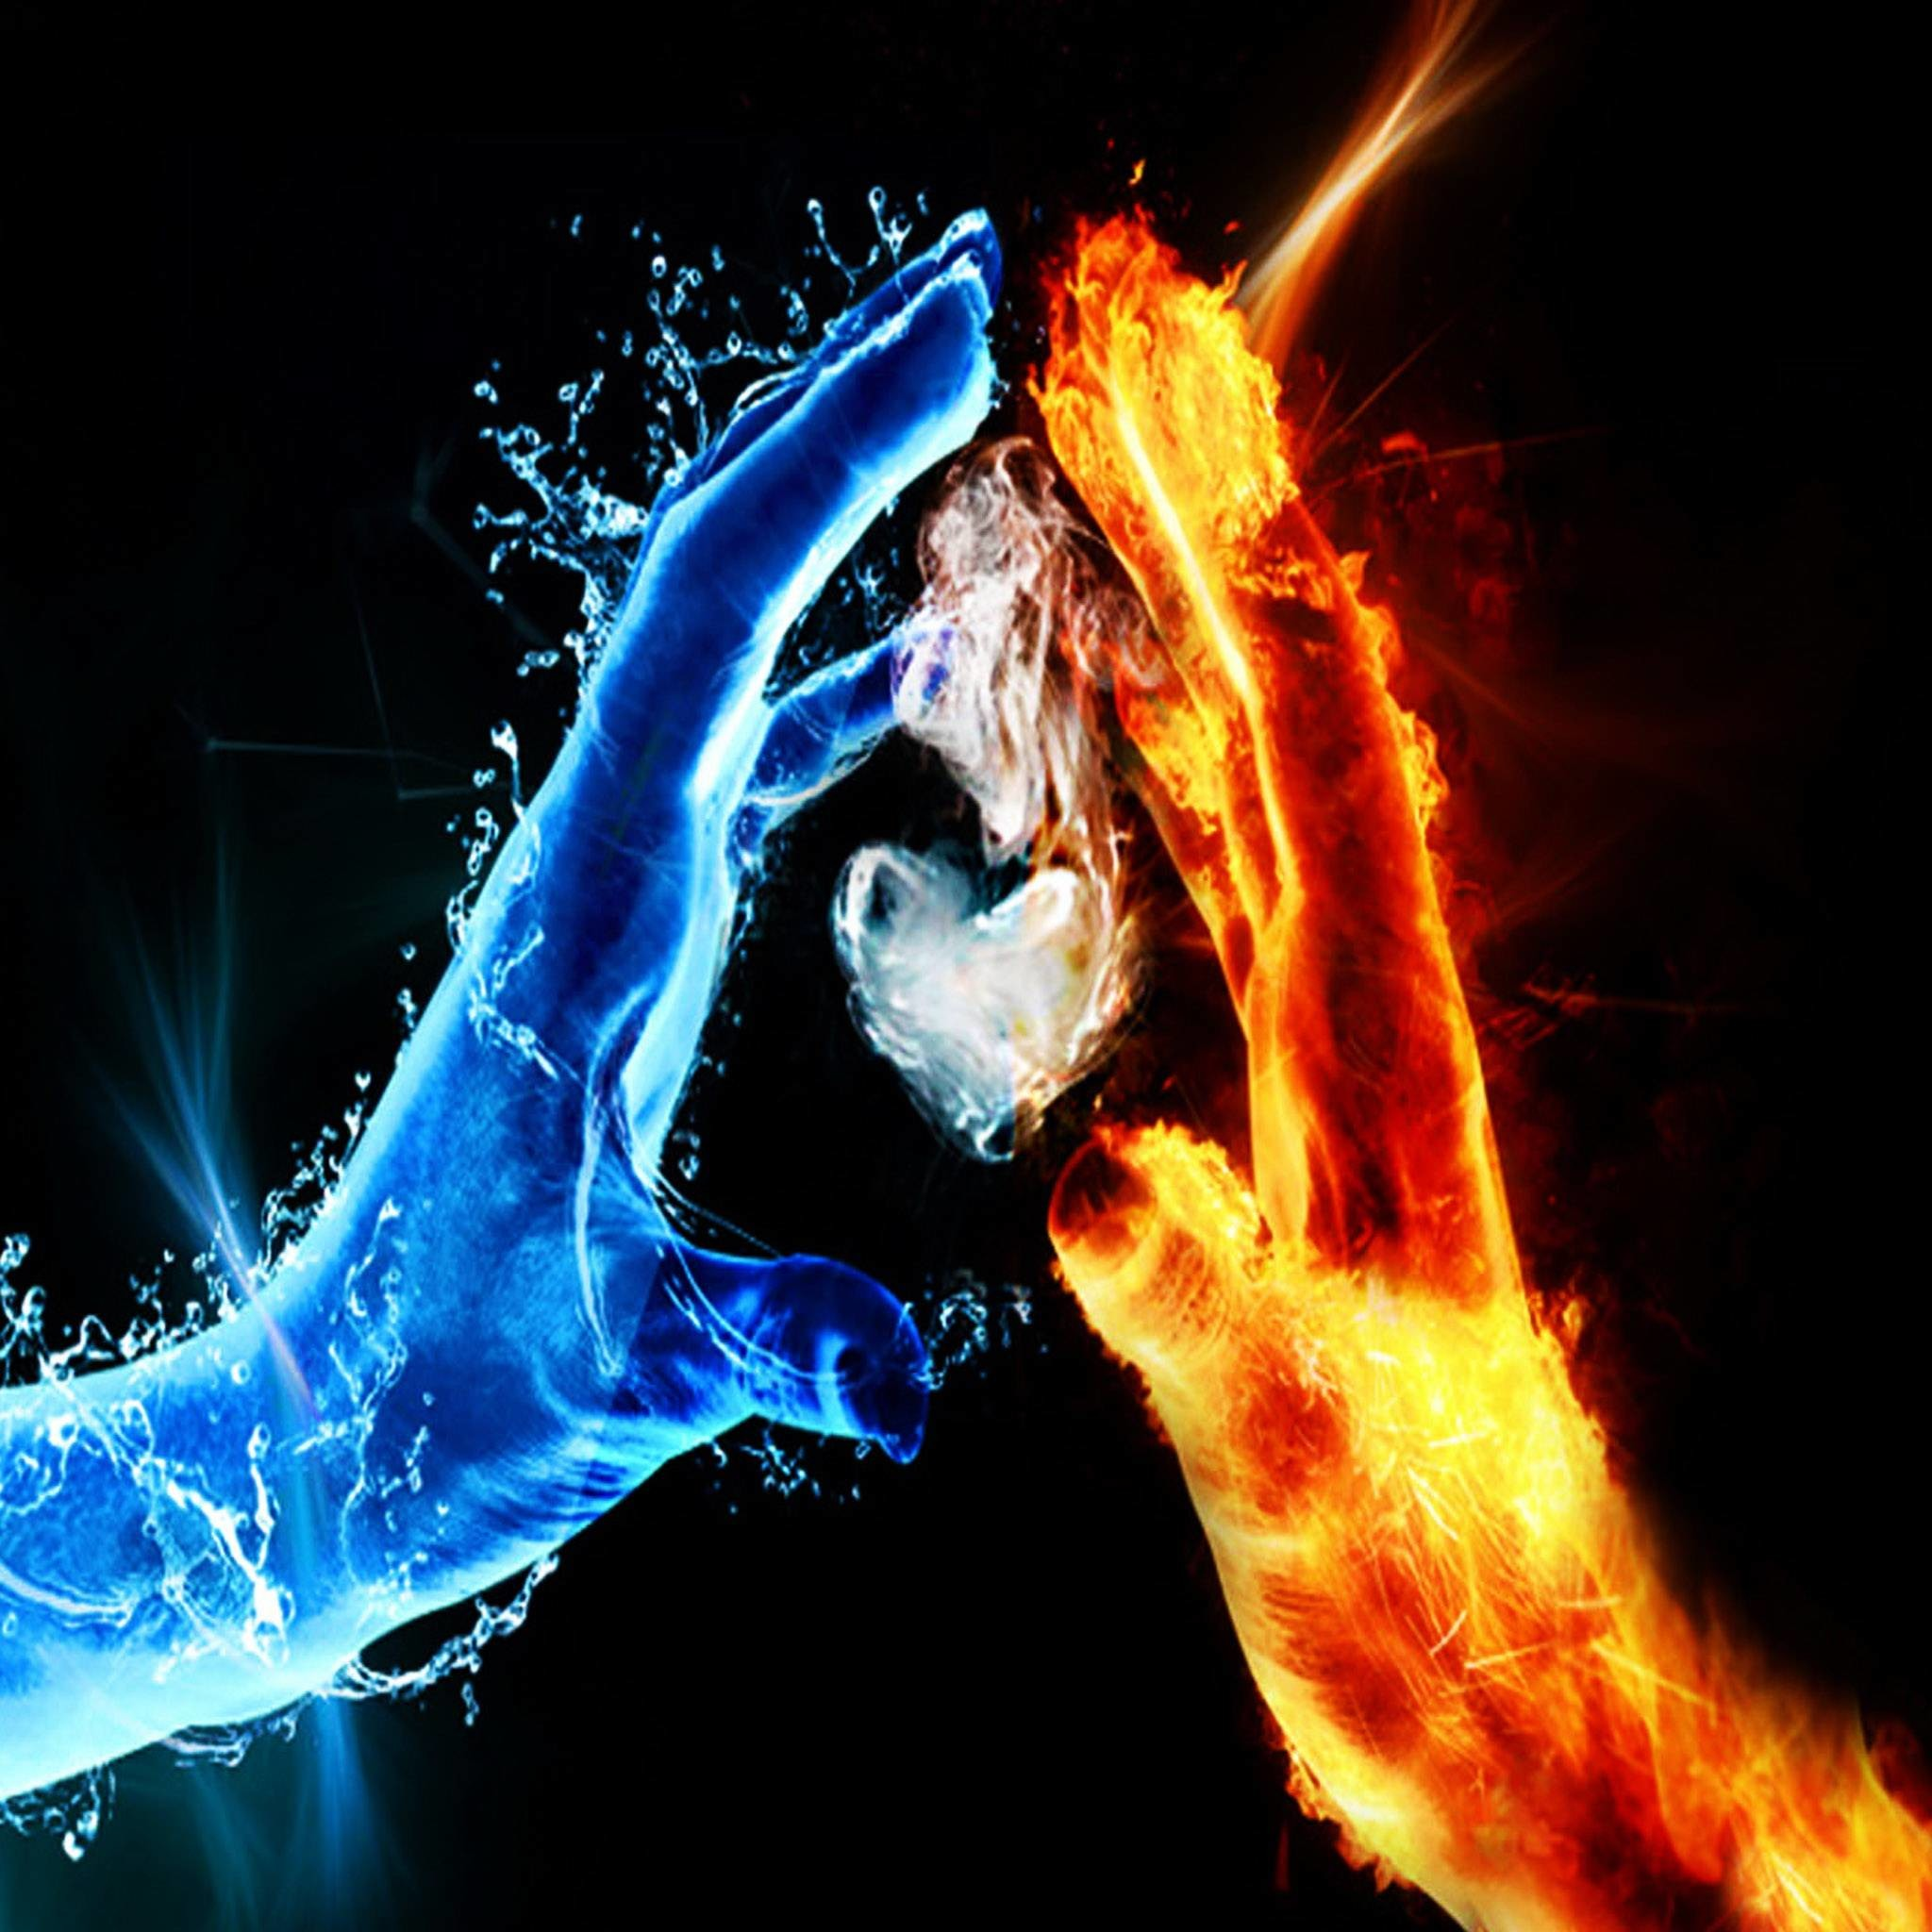 ice wolf wallpaper fire and ice poem wallpaper fire and ice movie .